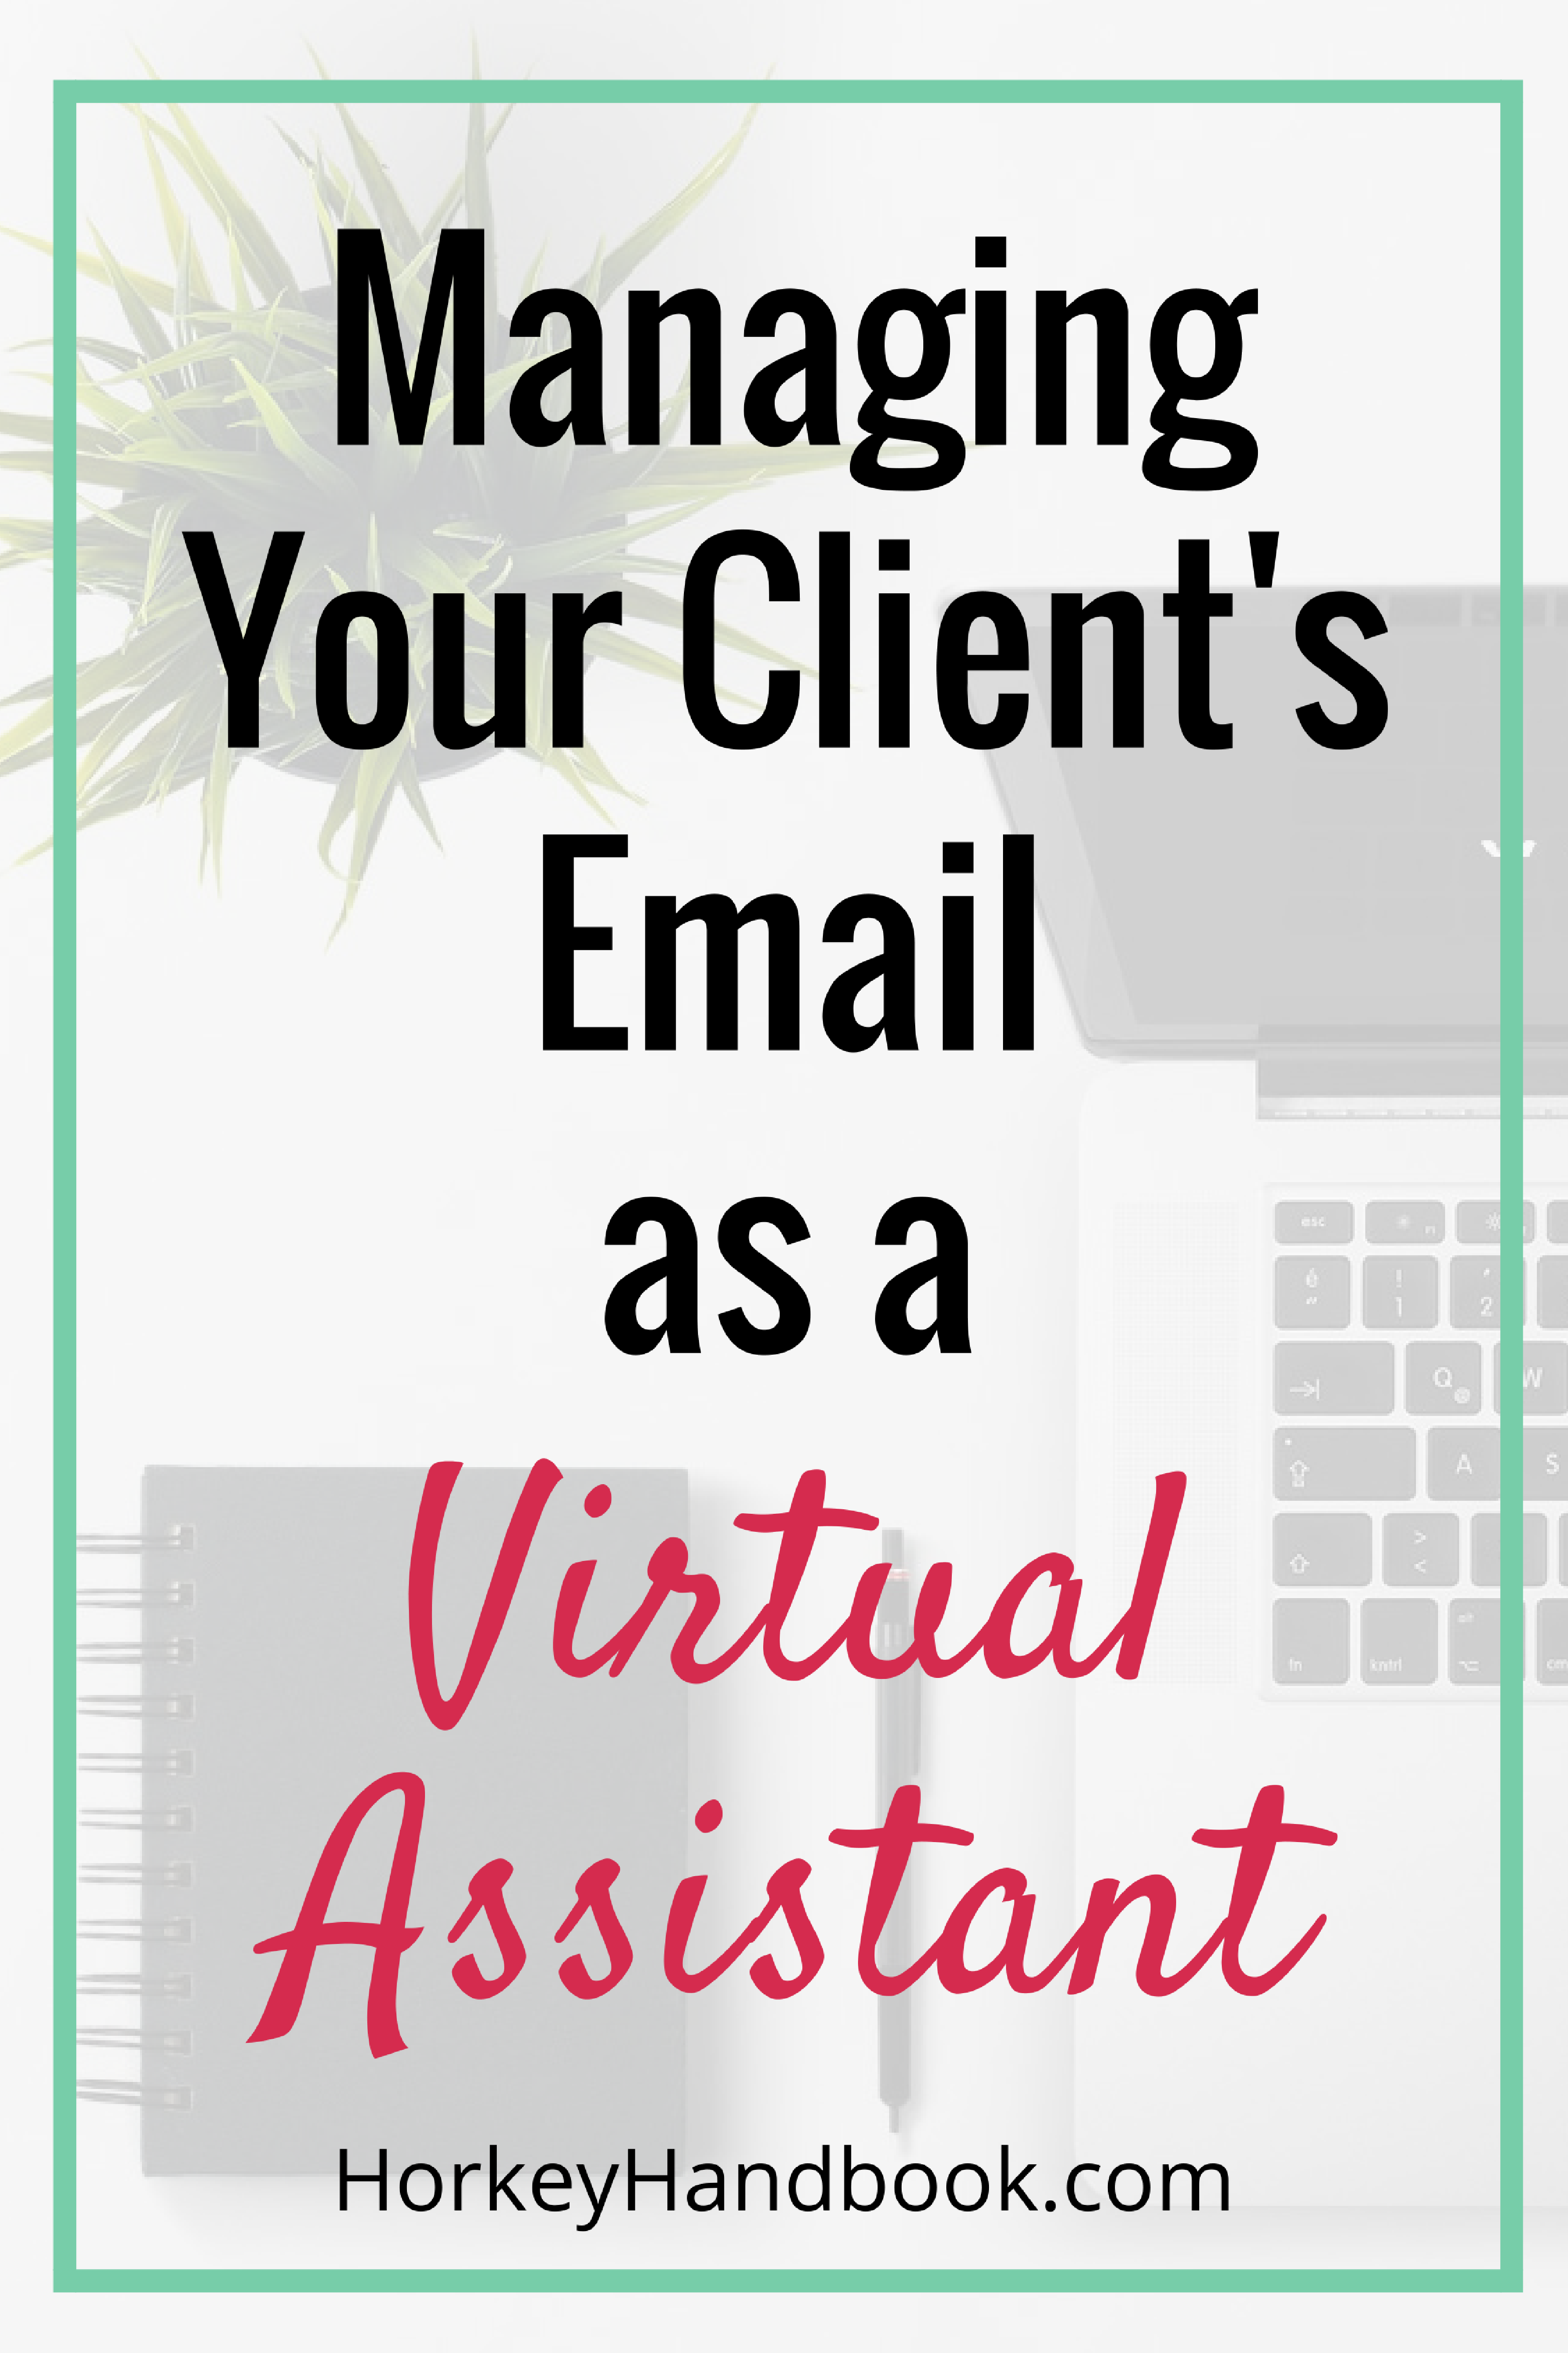 Offering email management will help you get started as a